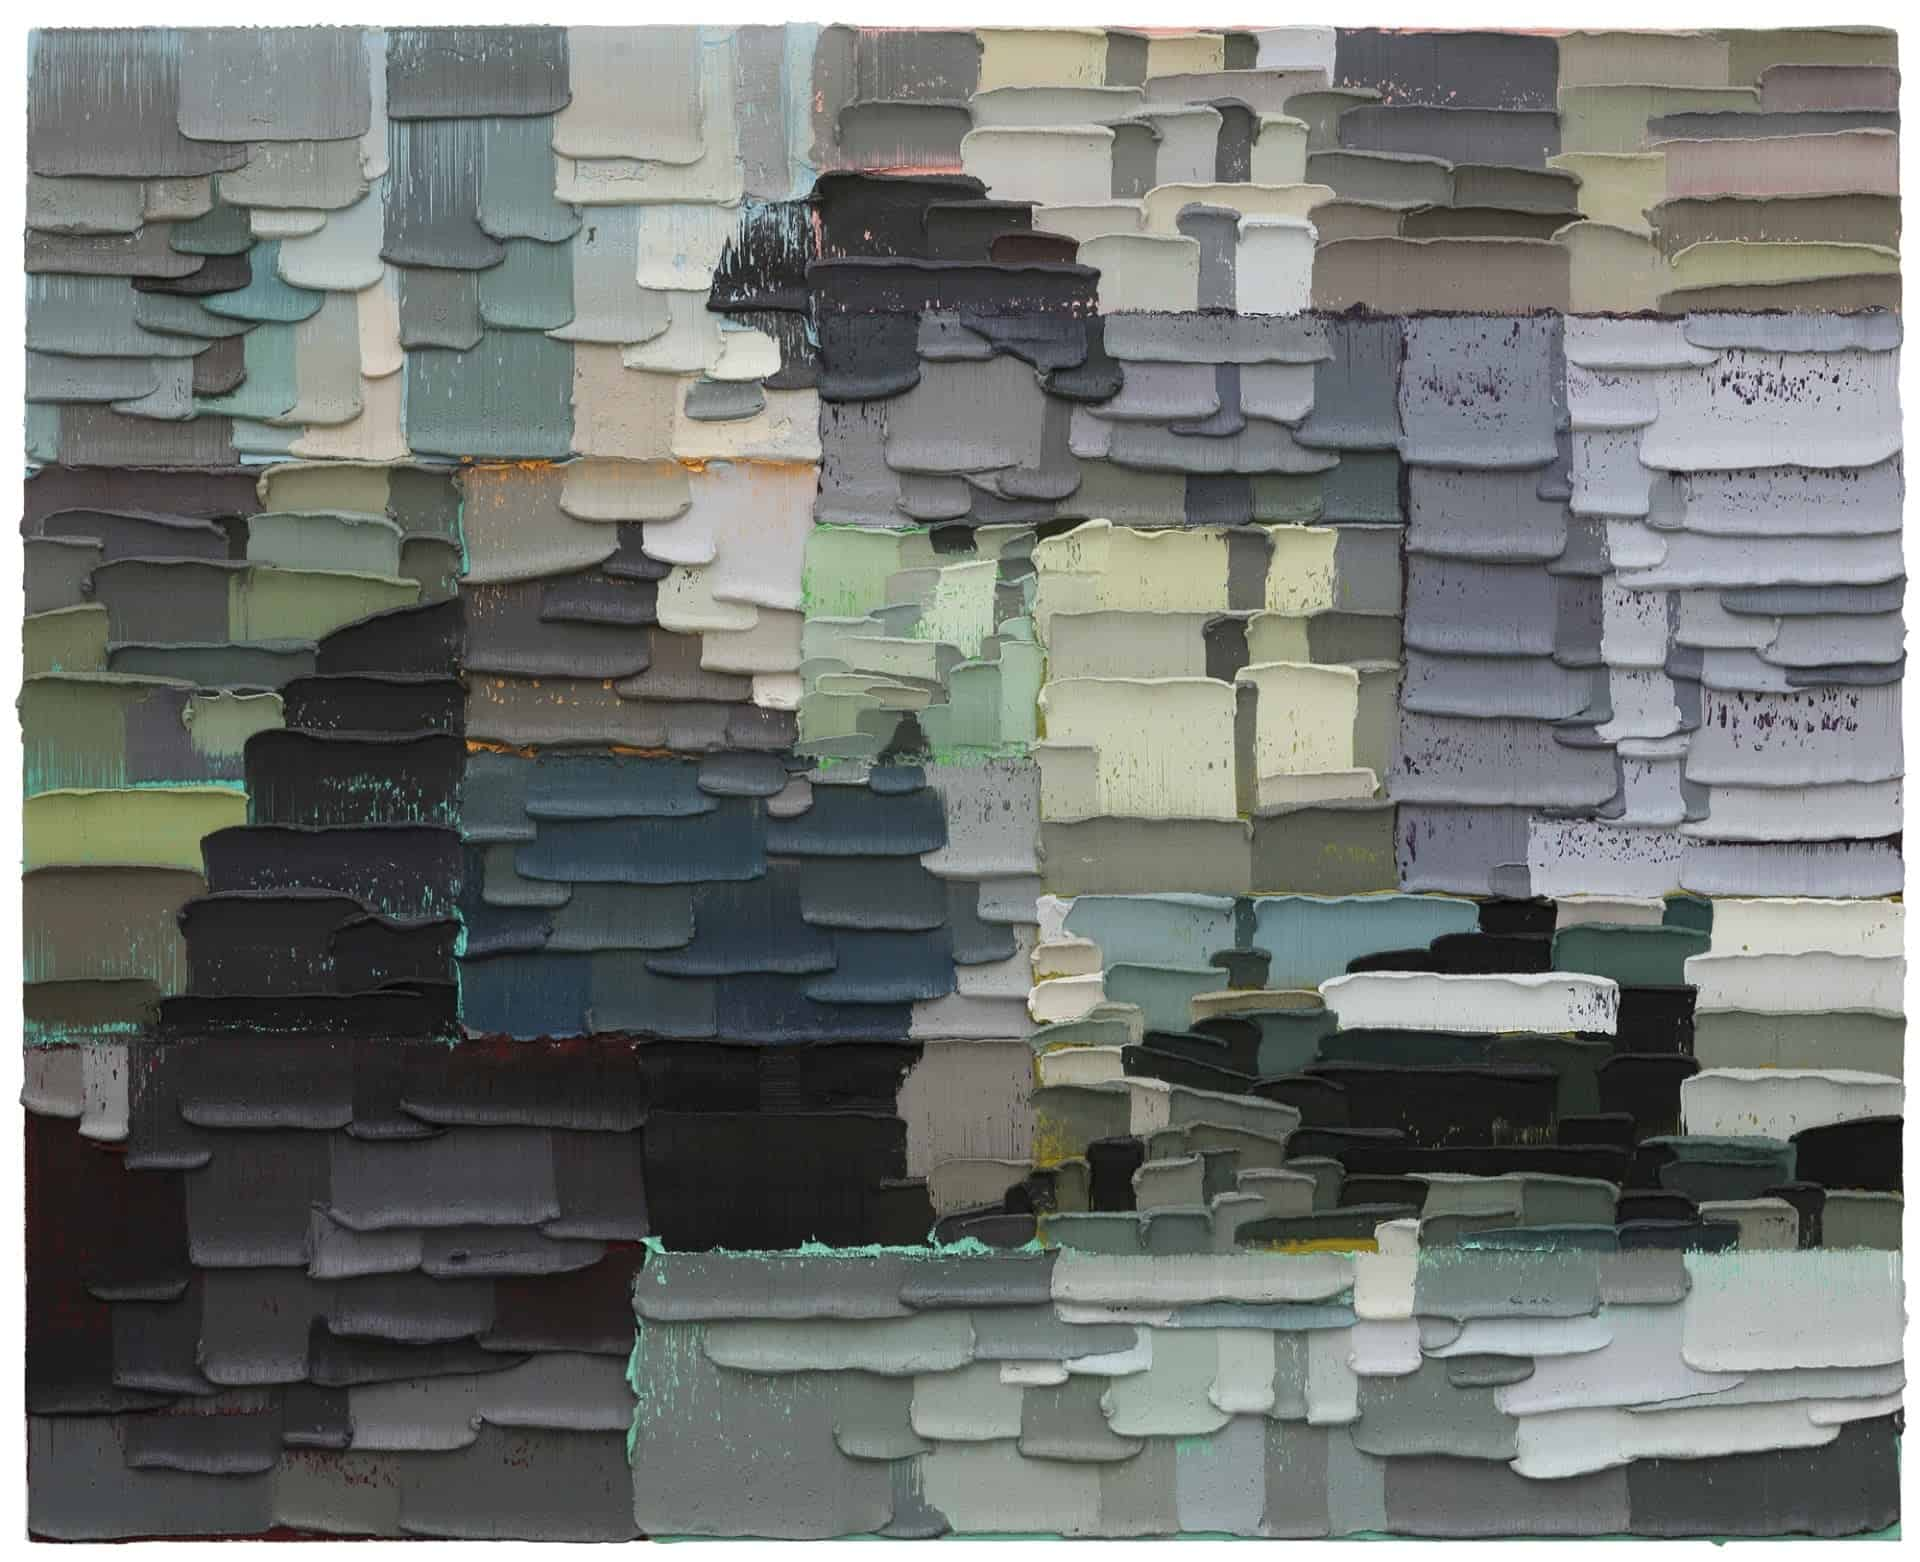 Civil Rather than Military (2018) © Li Songsong, courtesy Pace Gallery